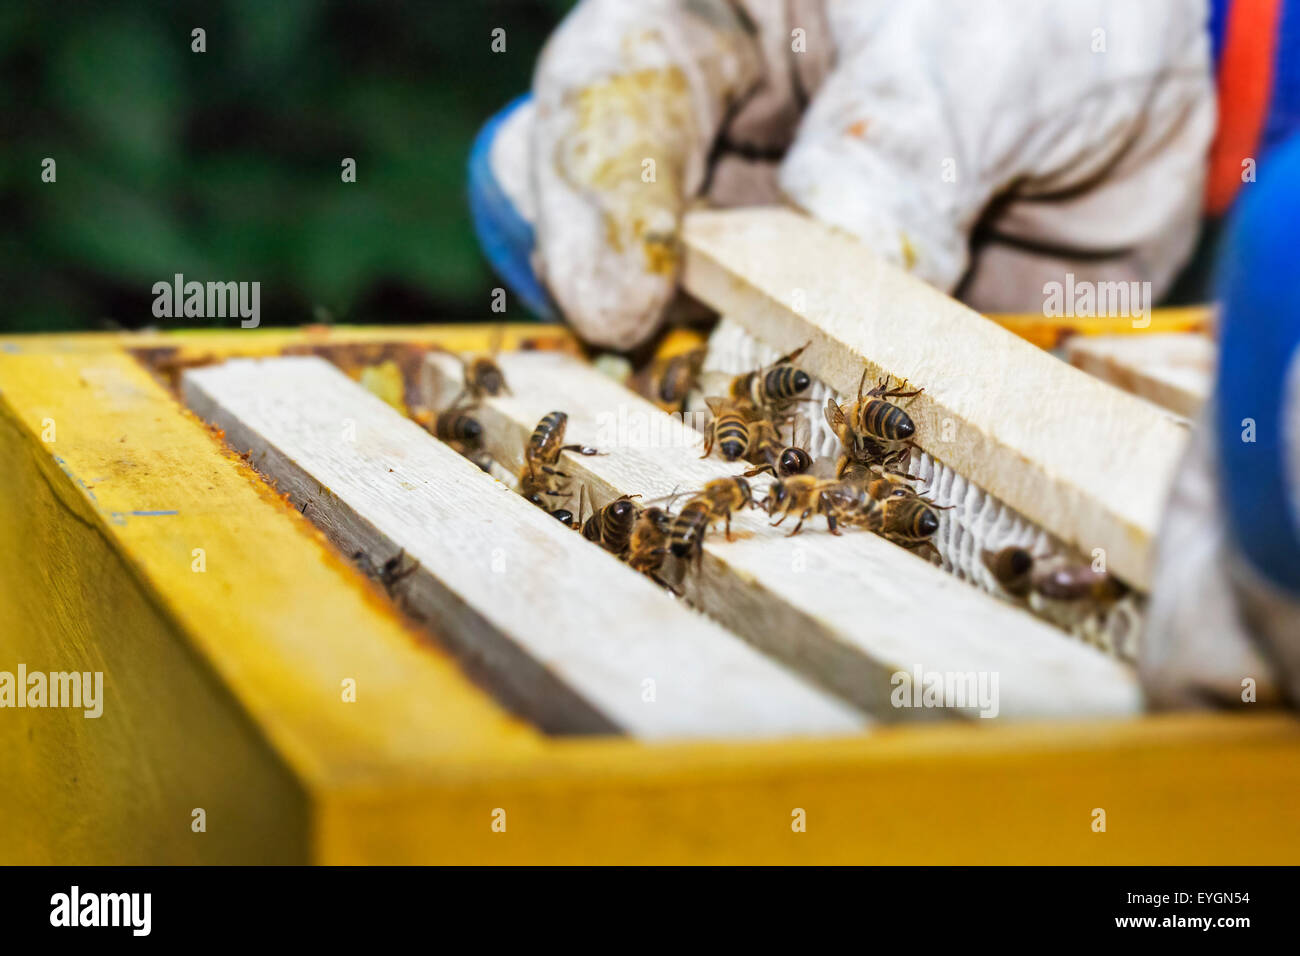 Honey Combs Stock Photos Images Alamy Beekeeping Wiring Board Beekeeper In Protective Clothing Inspecting Frame With Honeycomb From Bees Apis Mellifera